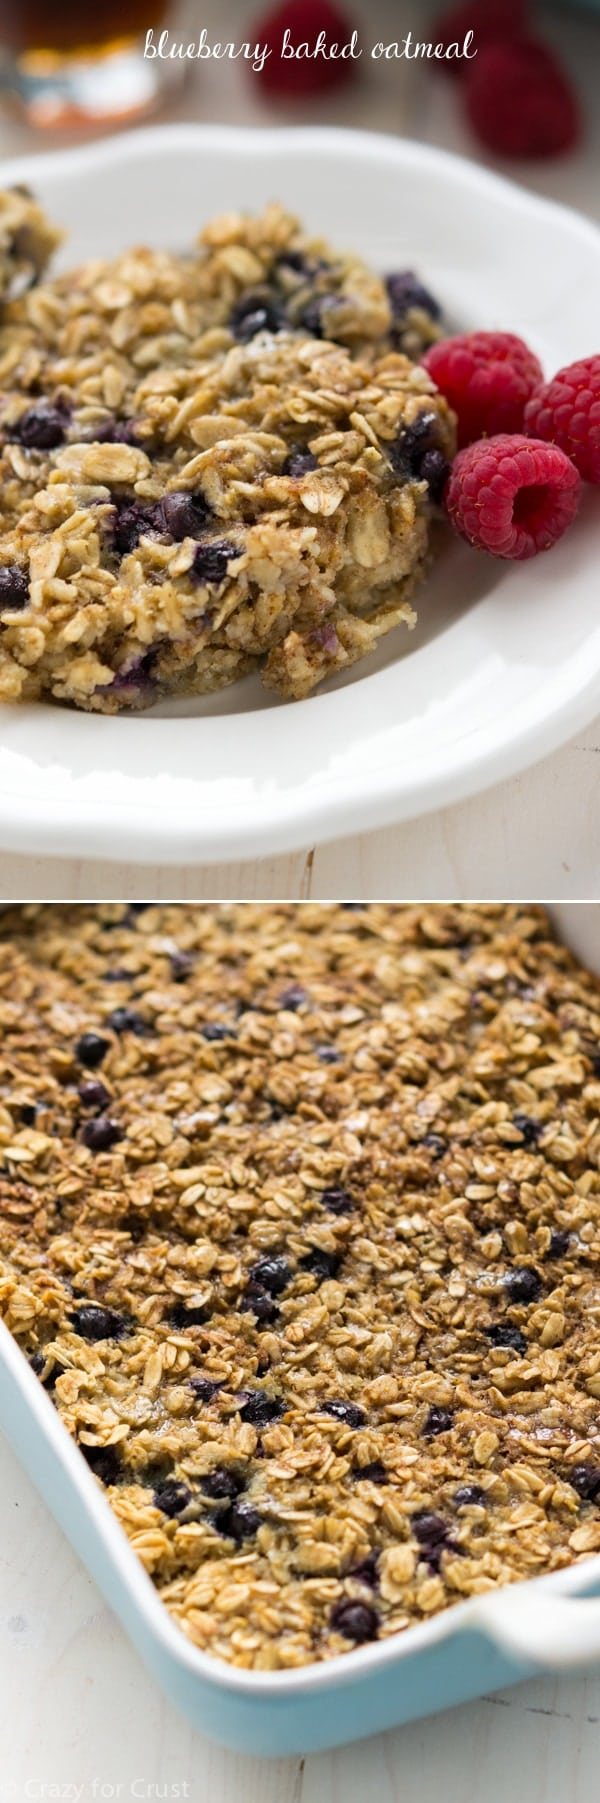 Blueberry Baked Oatmeal is a healthier, easy breakfast. Great for a crowd or to freeze for quick breakfasts!